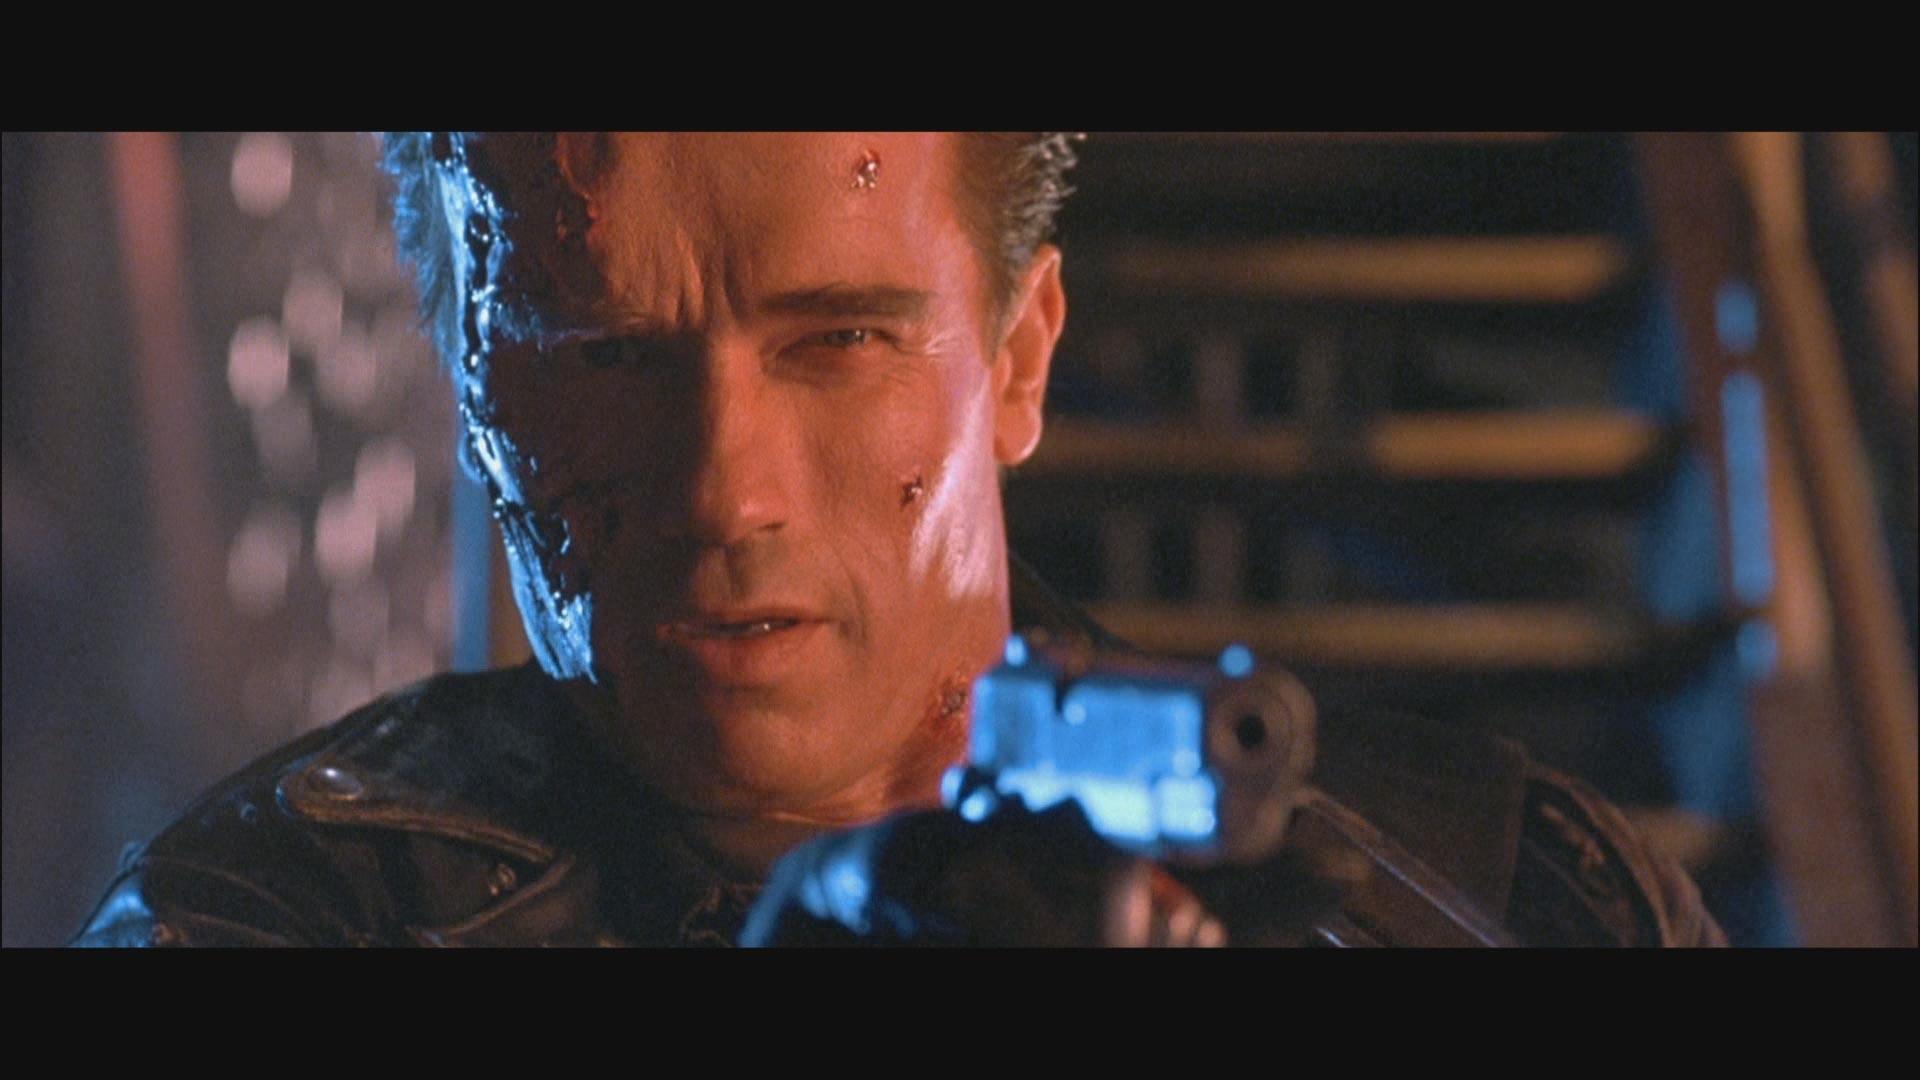 http://www.originalprop.com/blog/wp-content/uploads/2009/03/terminator-2-hd-screencapture-colt-detonics-movie-prop-24.jpg